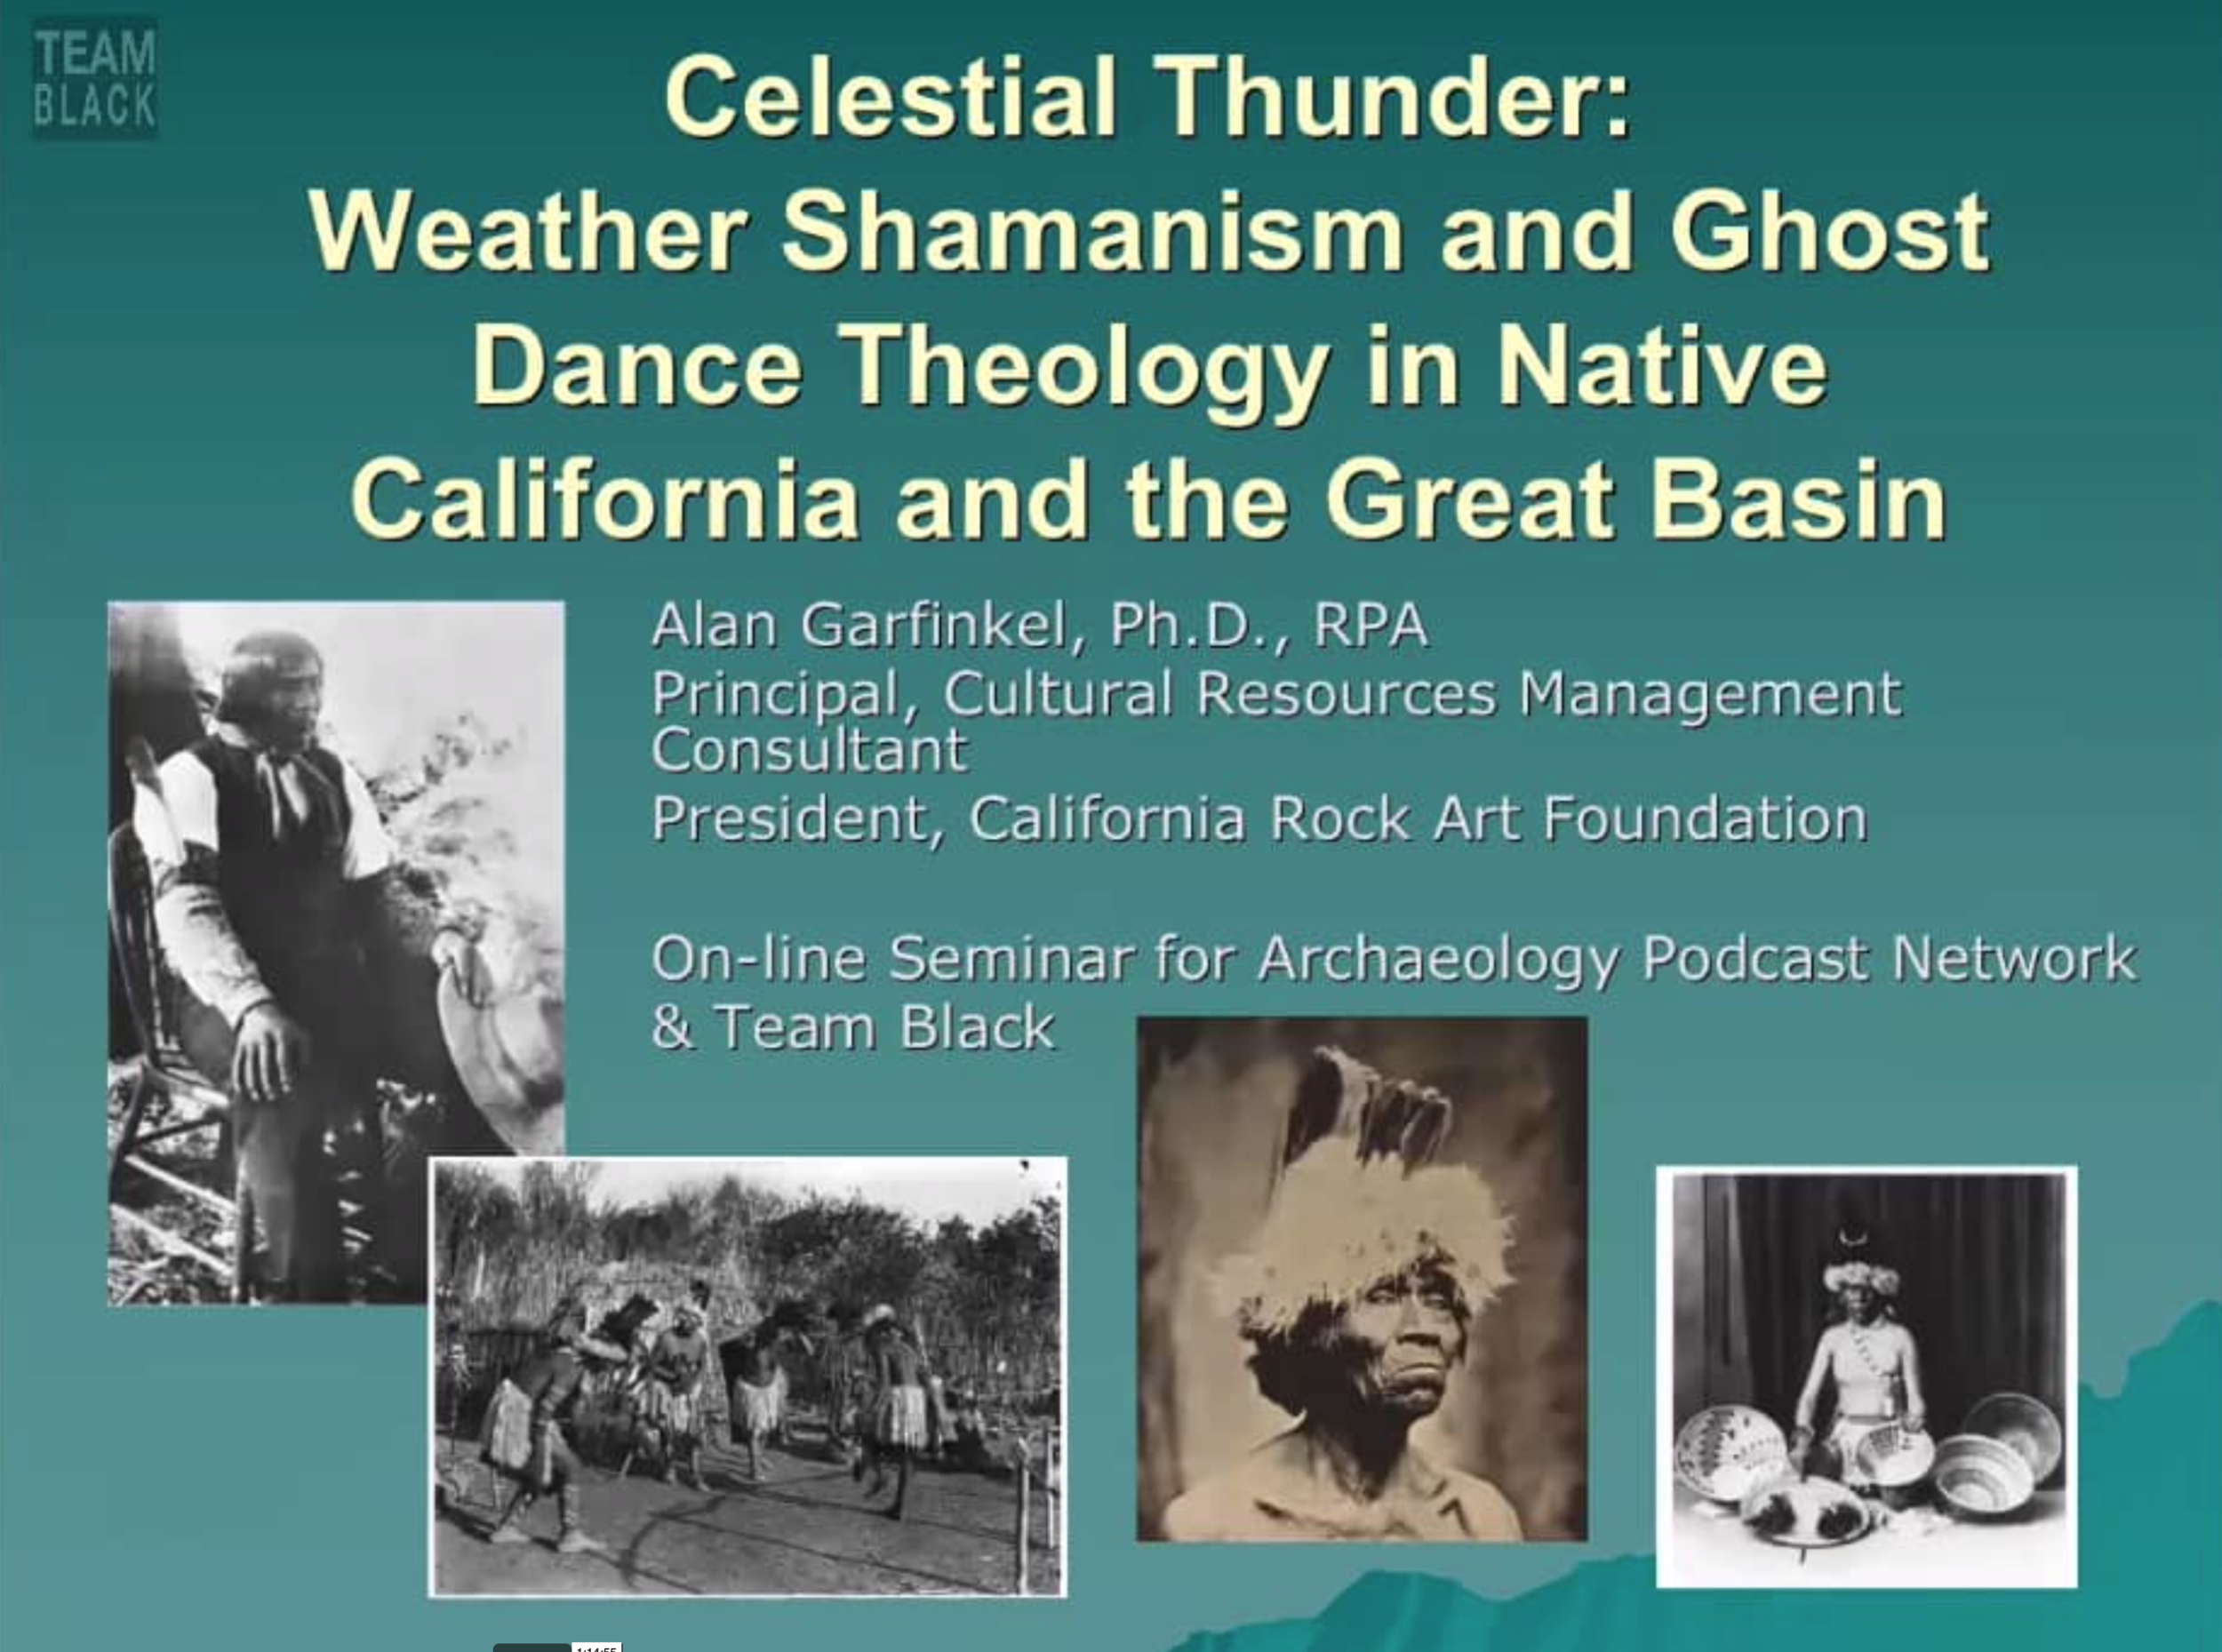 Celestial Thunder: Weather Shamanism and Ghost Dance Theology in Native California and the Great Basin, Dr. Alan Garfinkel   Dr. Alan Garfinkel brings his decades of research and experience to present you this webinar. Learn about the native religions in the eastern Mojave and how rock art and other sites help tell this story.